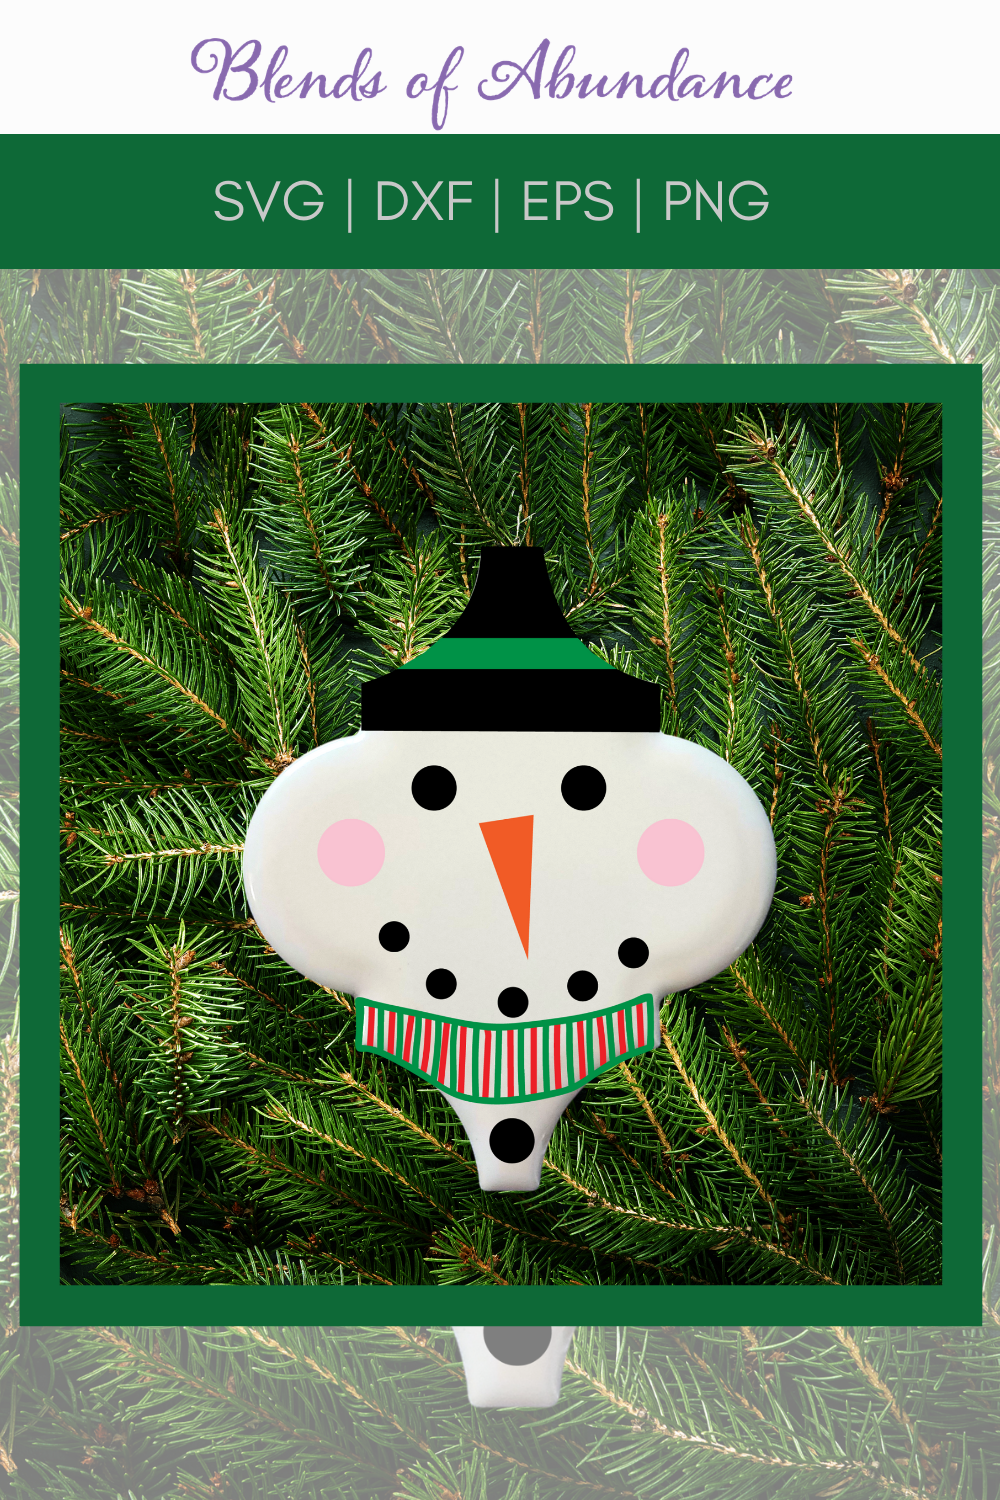 Snowman Arabesque Tile Ornament Svg Tile Ornament Template Lantern Tile Christmas Snowman Cricut Christmas Ideas Ornament Template Christmas Projects